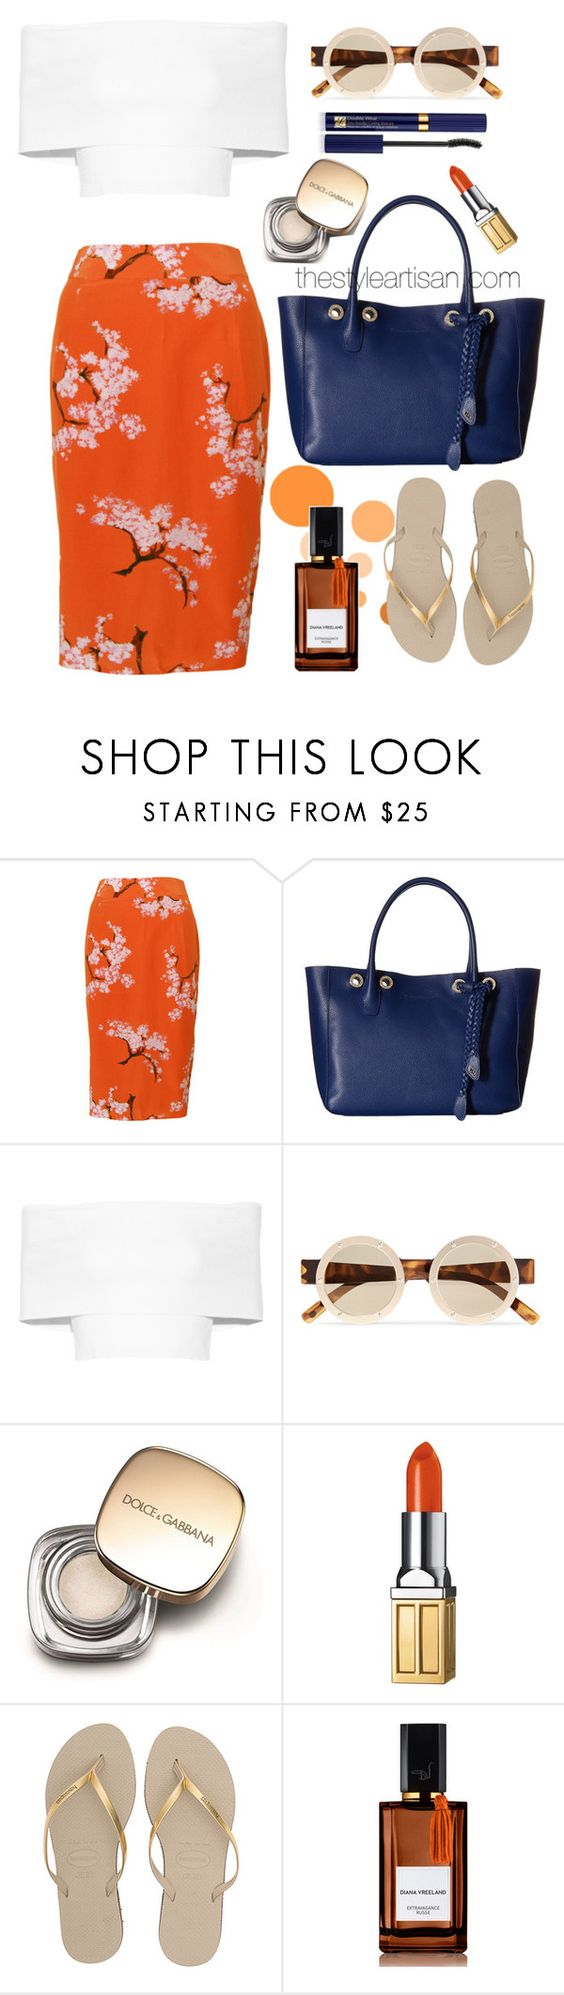 """Pre-owned Project D 'Thelma' Silk Summer Print Pencil Skirt"" by thestyleartisan ❤ liked on Polyvore featuring Project D London, Cole Haan, Rosetta Getty, Le Specs, Dolce&Gabbana, Elizabeth Arden, Havaianas, Diana Vreeland Parfums and Estée Lauder"